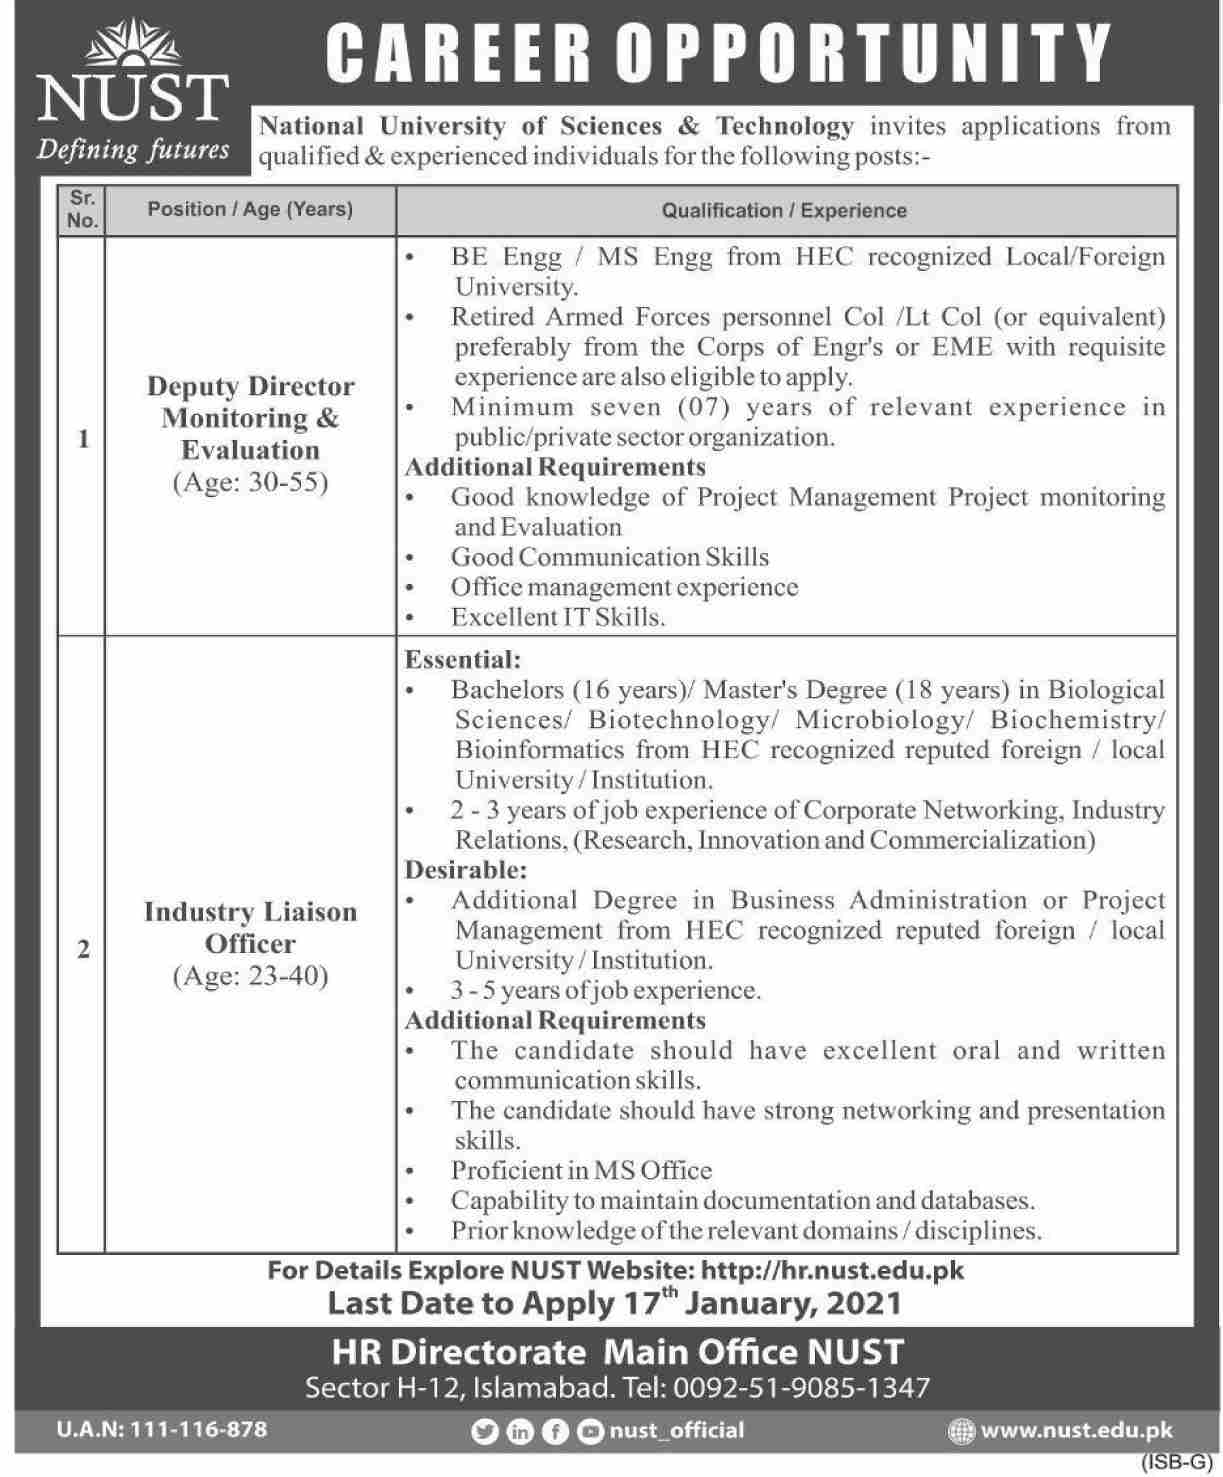 National University of Sciences & Technology NUST Jobs January 2021